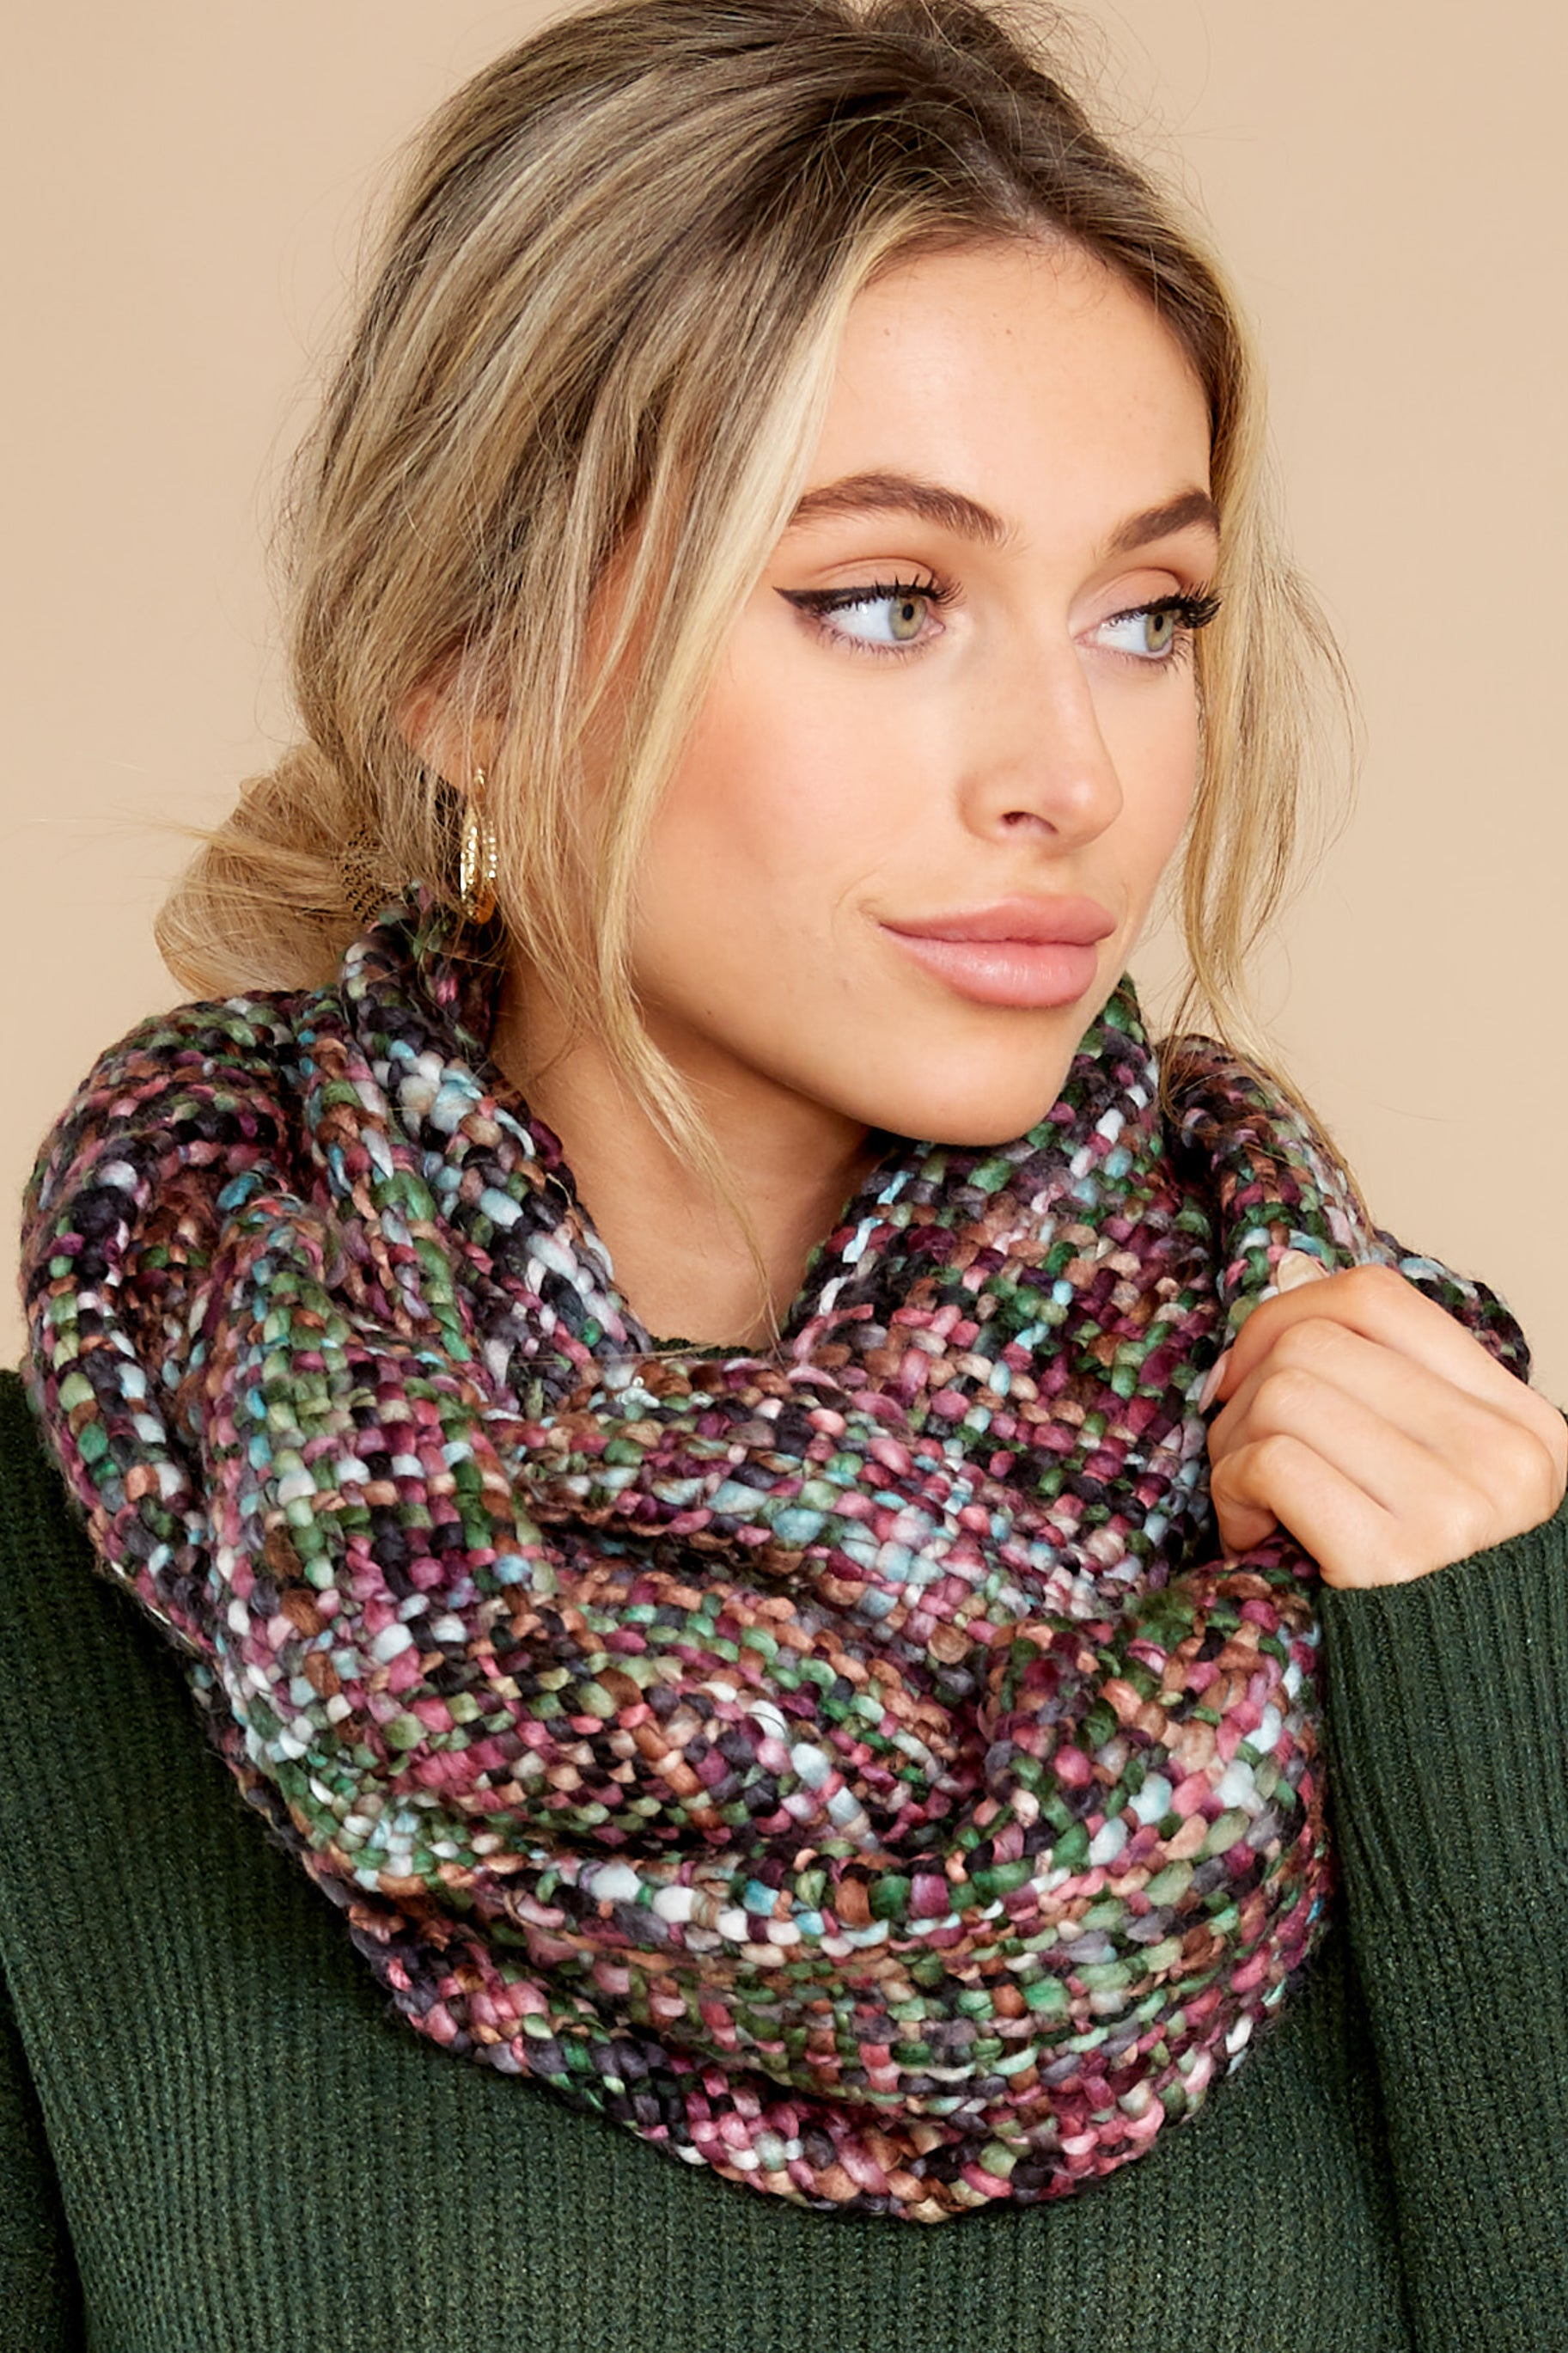 1 Warm Me Up Purple And Green Multi Knit Infinity Scarf at reddress.com